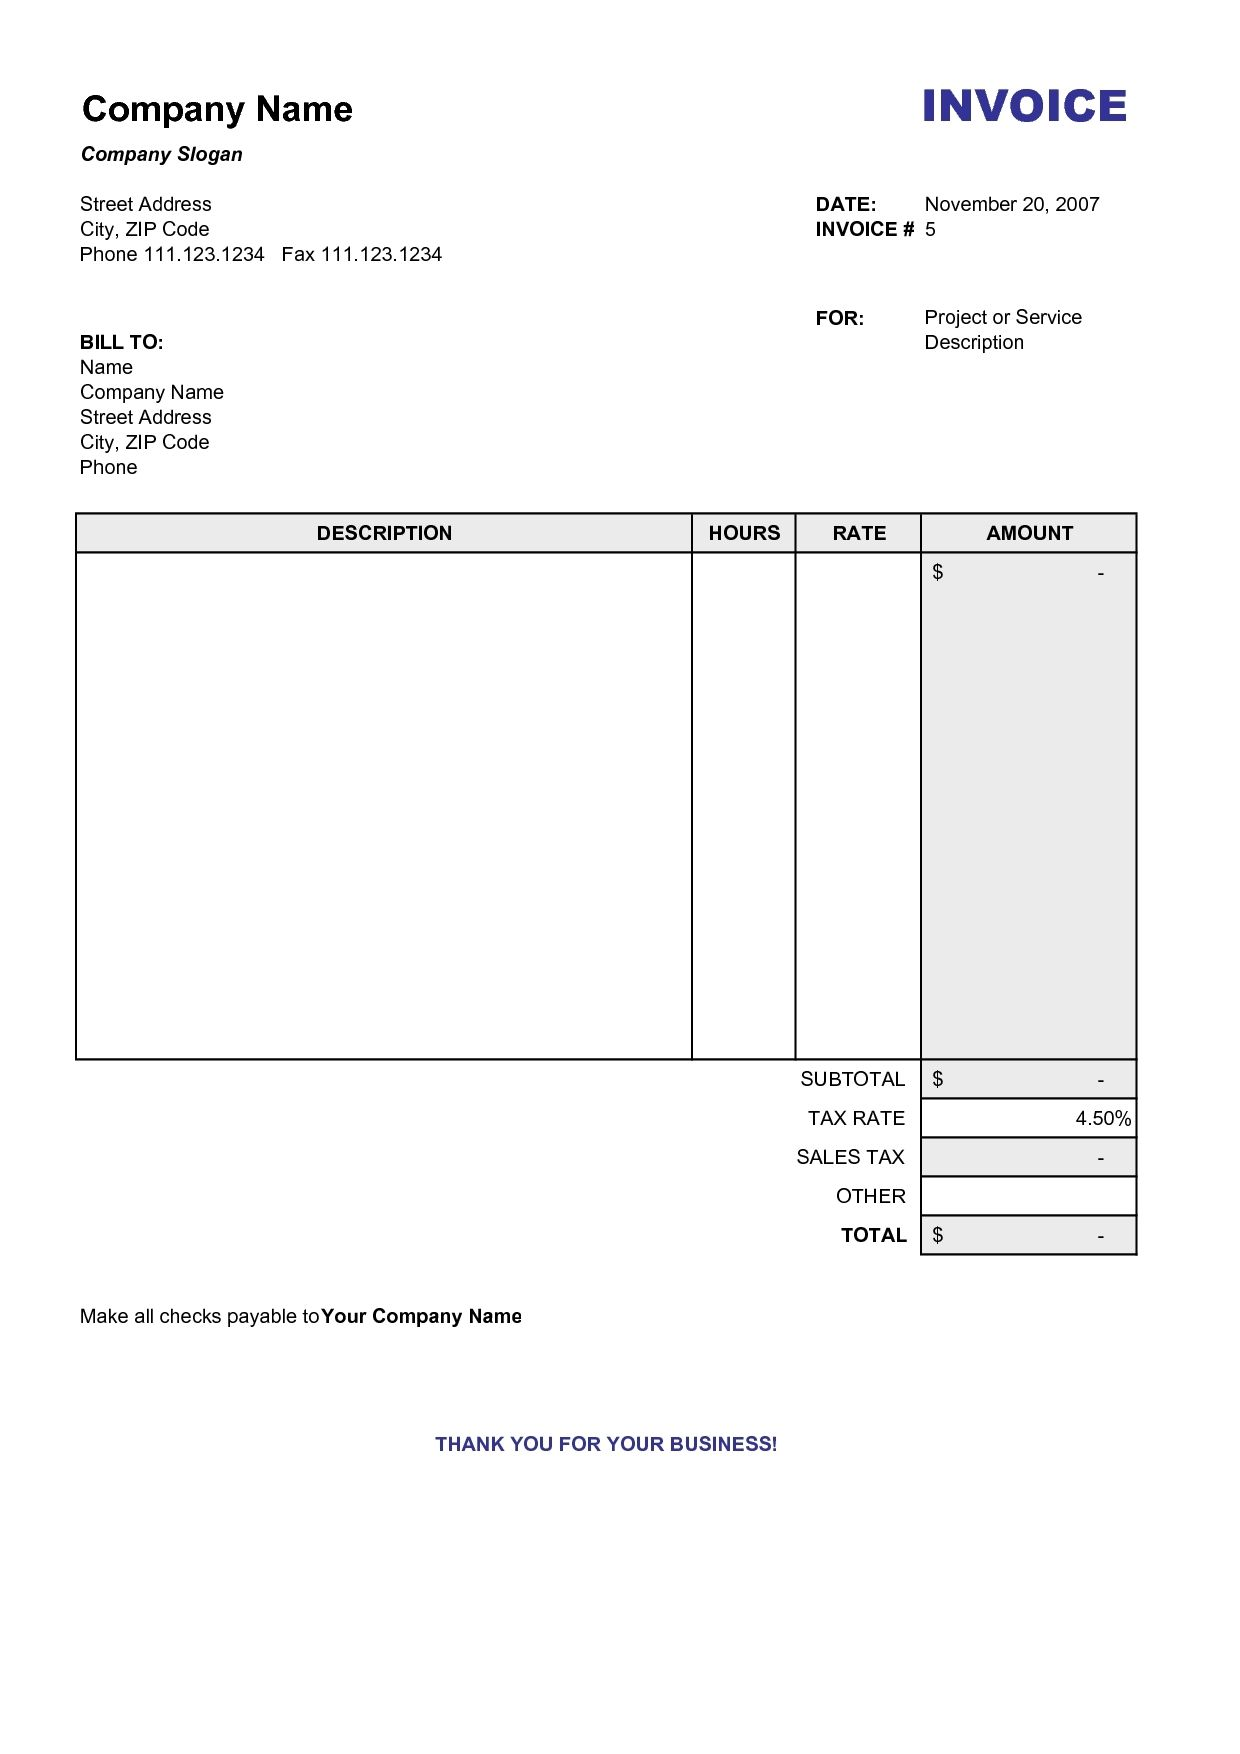 Copy Of A Blank Invoice Invoice Template Free Copy Of Blank - Free microsoft invoice templates for service business